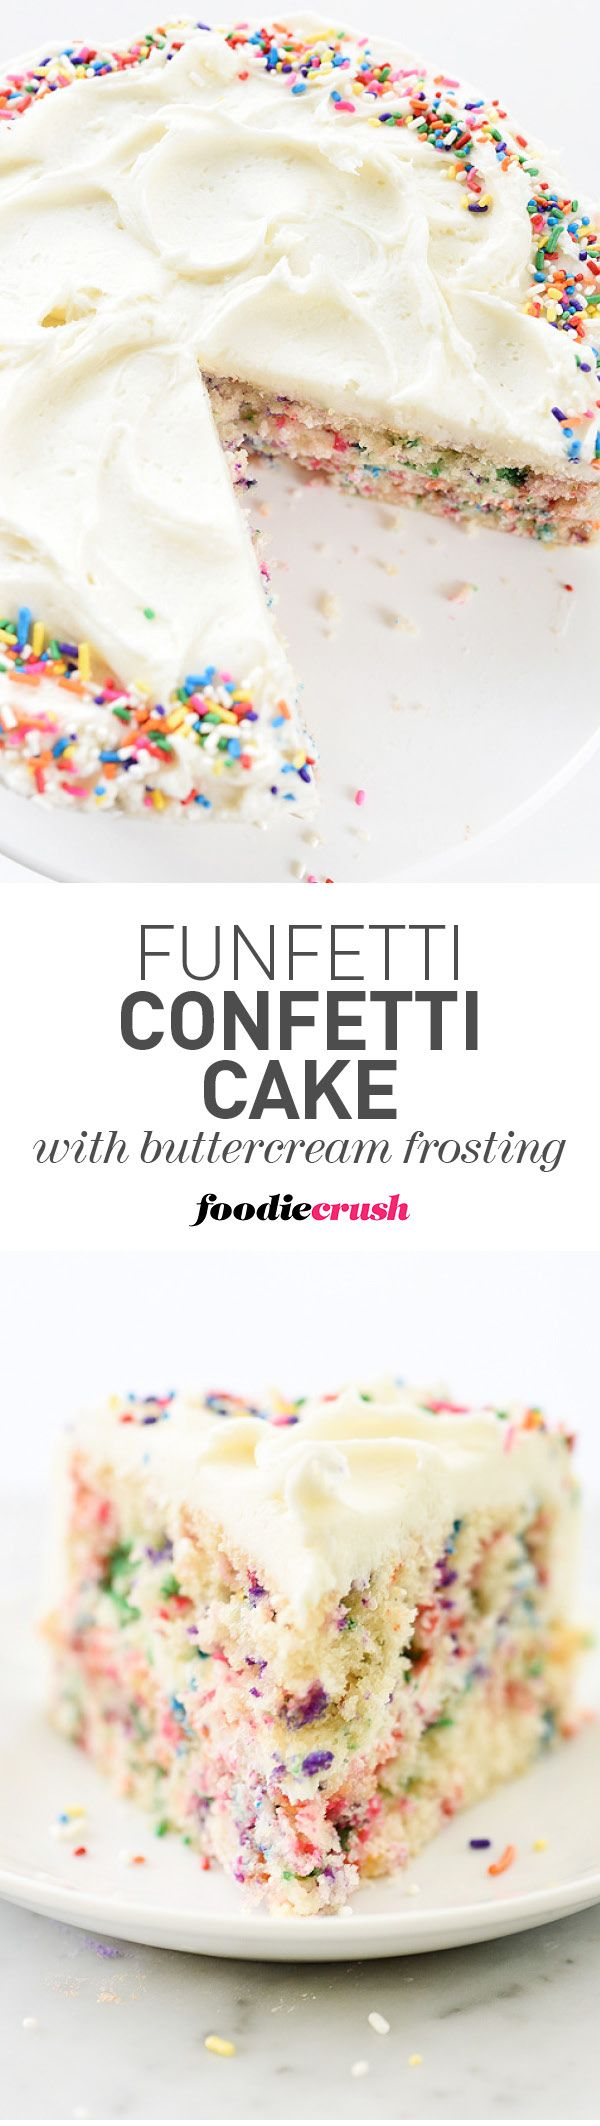 This colorful #funfetti cake has one of the tenderest crumbs I've ever had in a homemade cake and the buttercream frosting simply takes it over the top Try in a sheet cake form